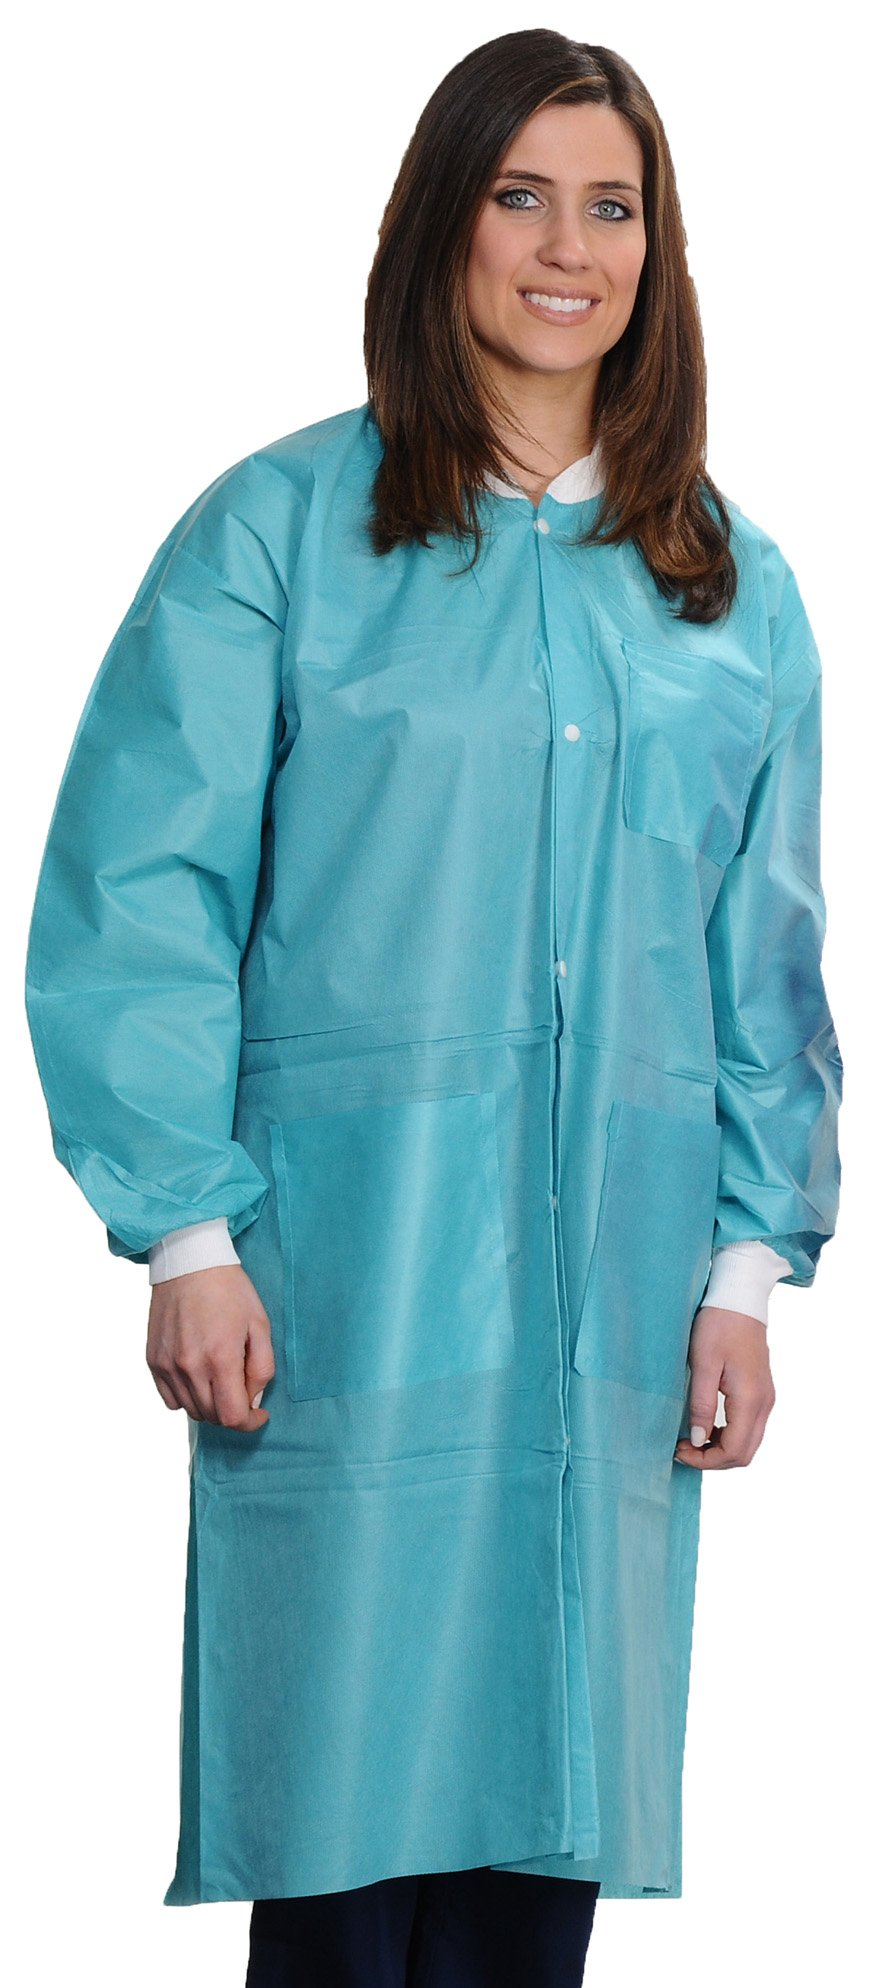 ValuMax 3560TE5XL Easy Breathe Cool and Strong, No-Wrinkle, Professional Disposable SMS Knee Length Lab Coat, Teal, 5X-Large, Pack of 10